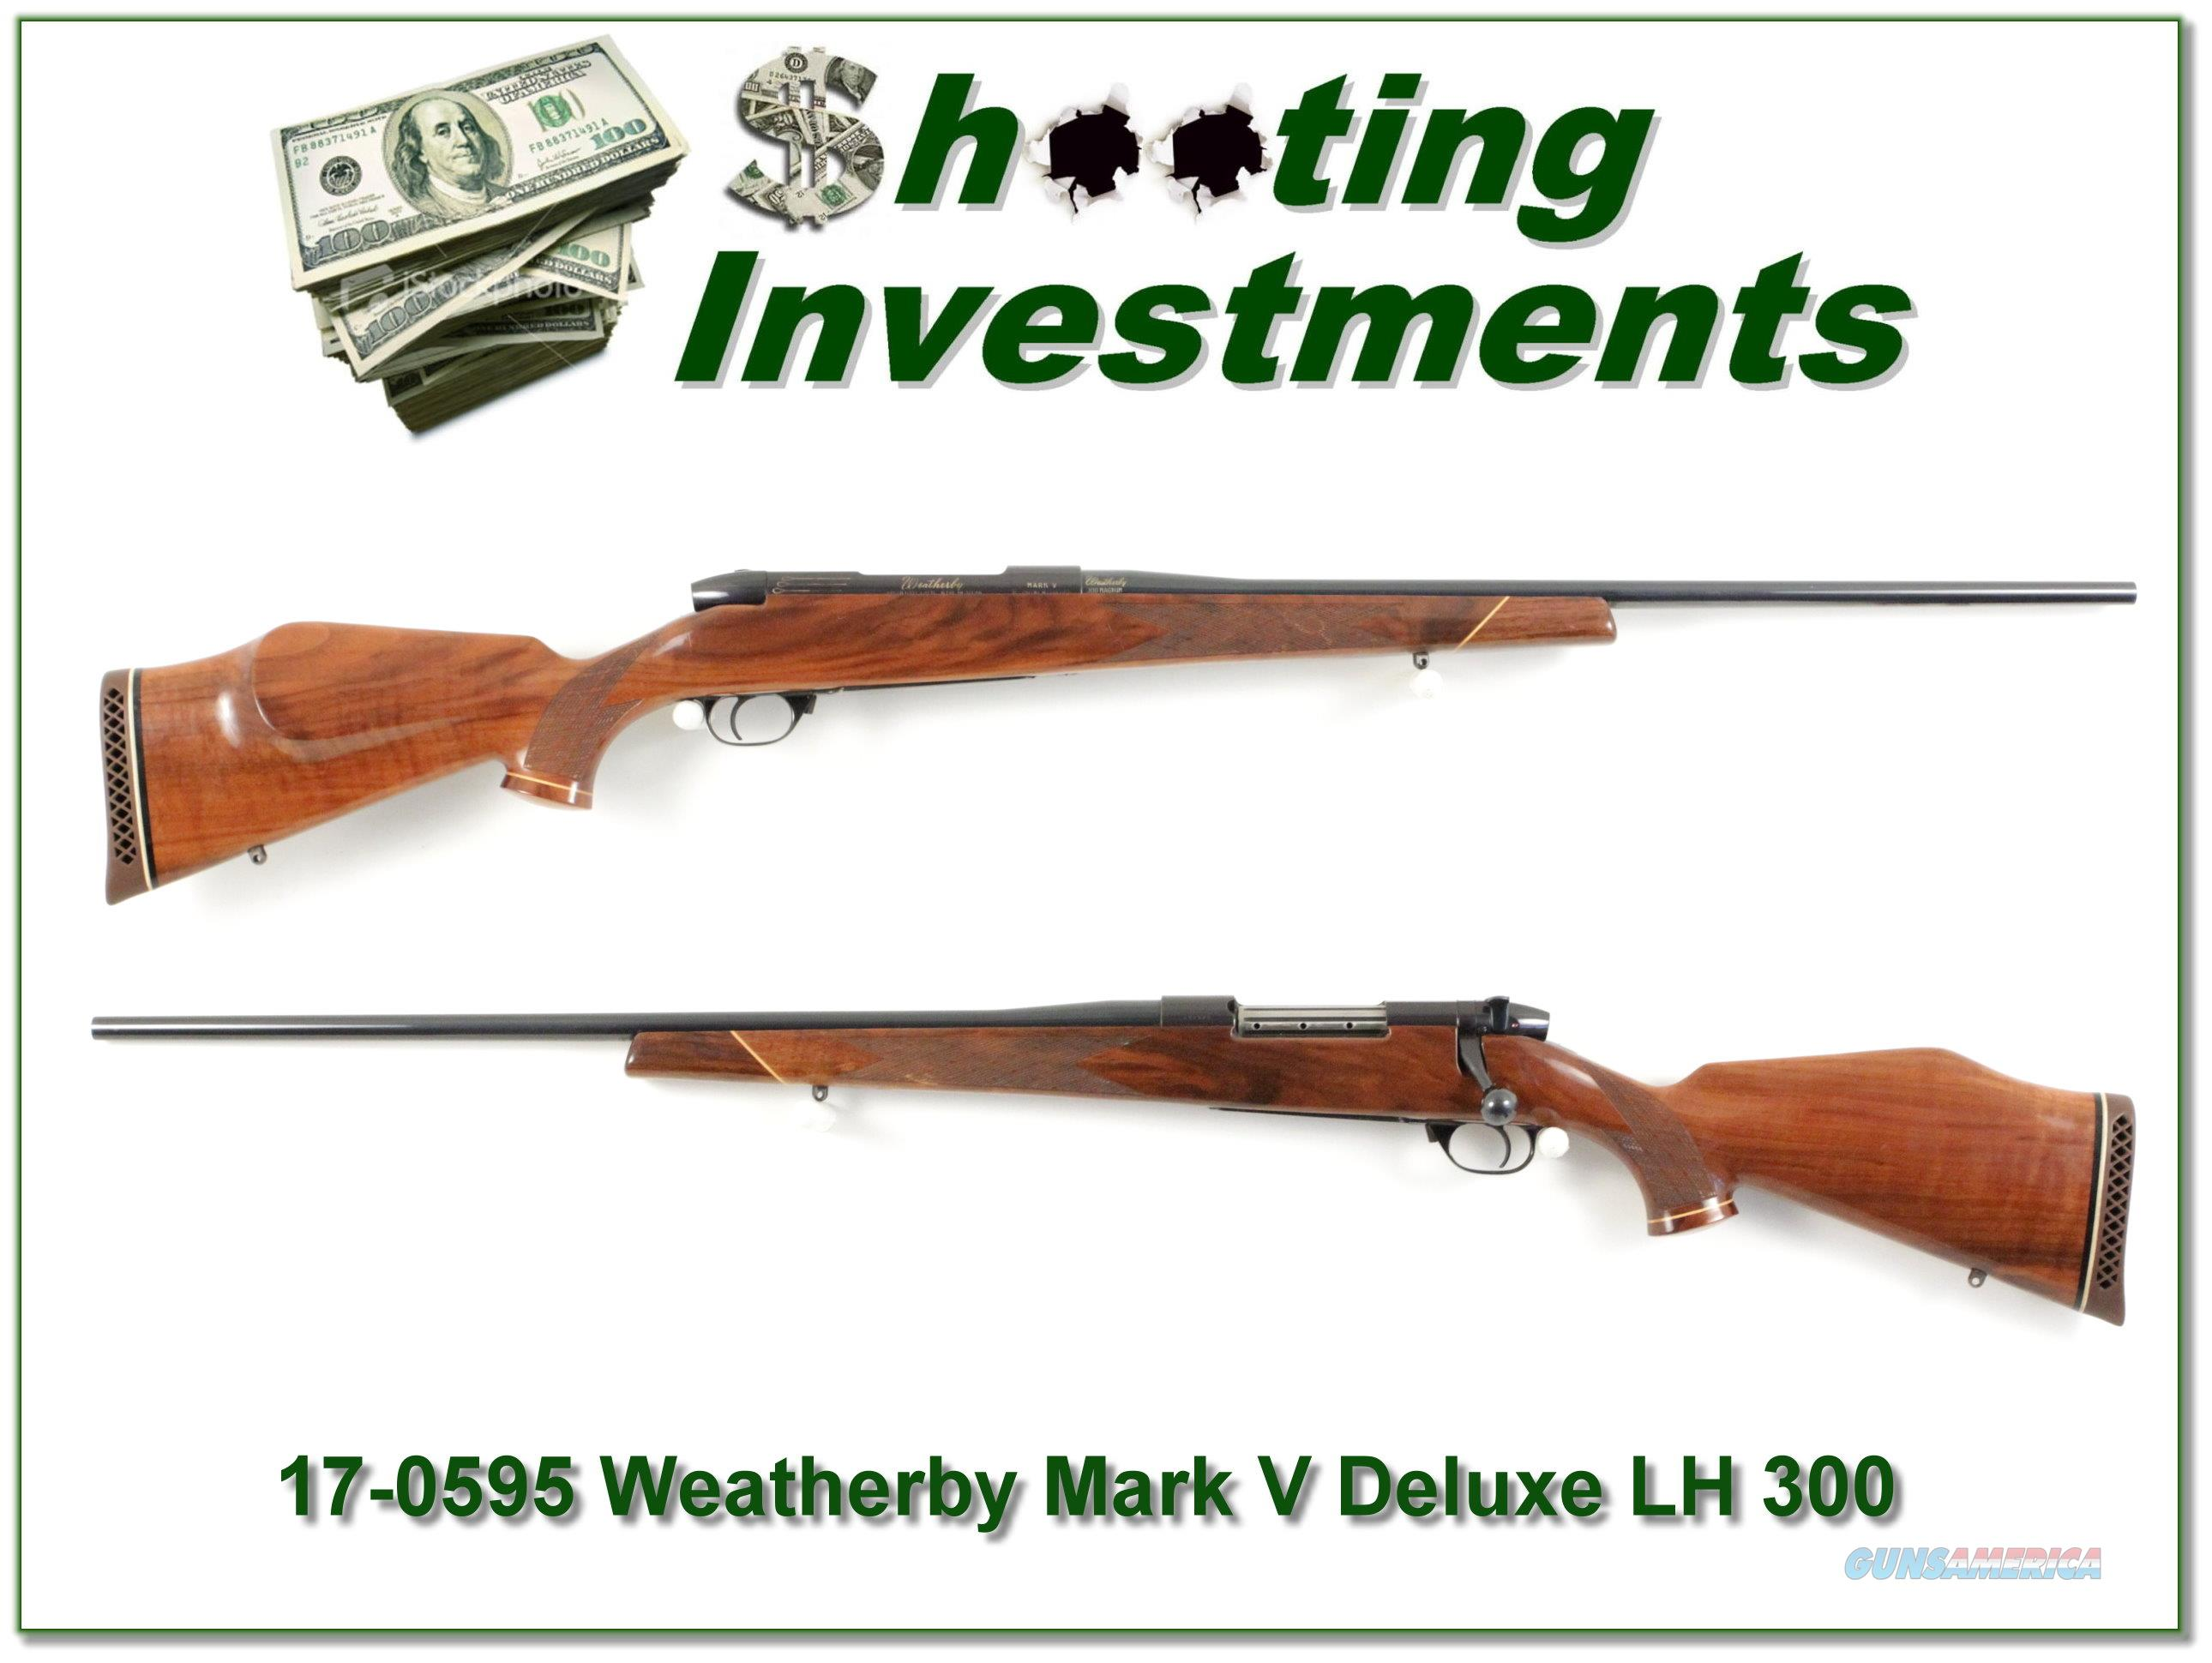 Weatherby Mark V Deluxe 300 Wthy Left Handed!  Guns > Rifles > Weatherby Rifles > Sporting